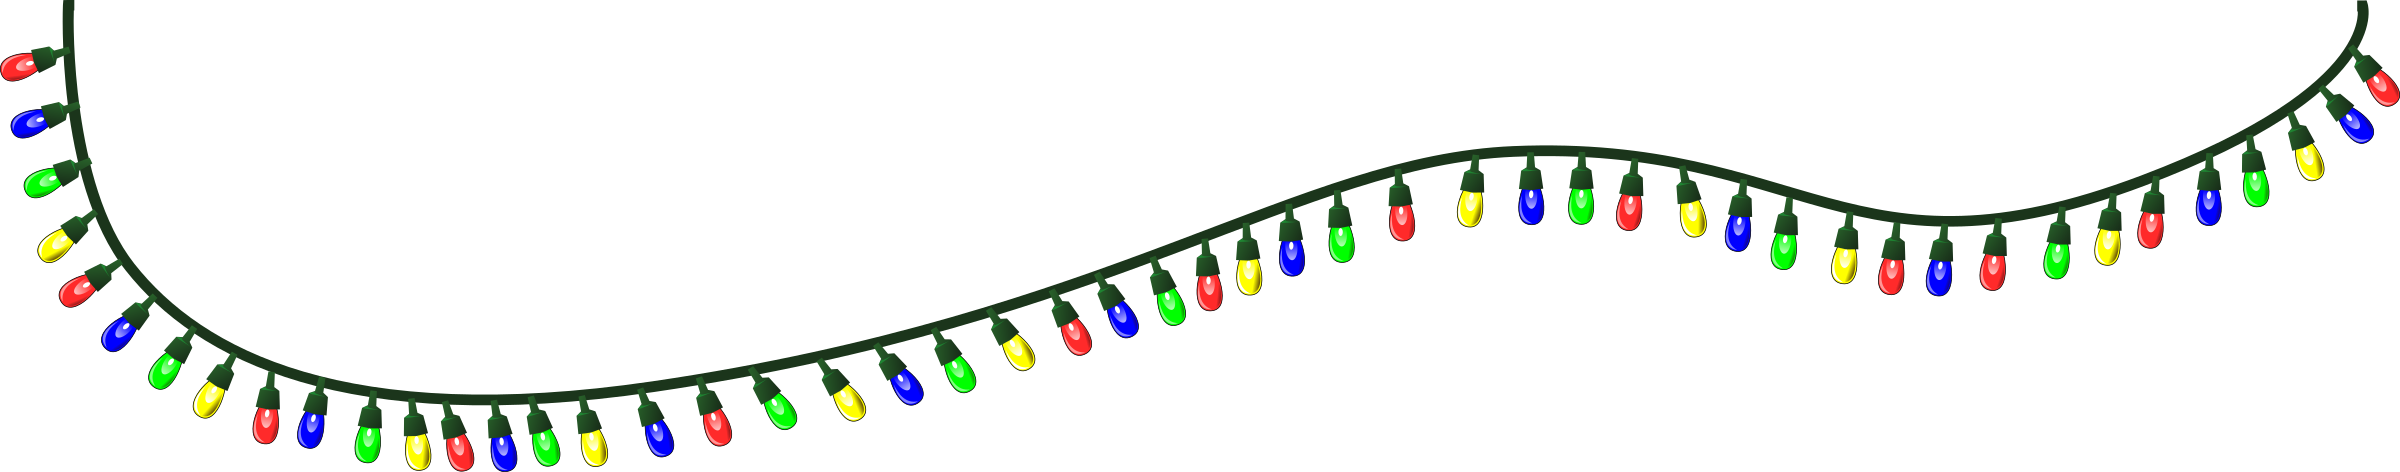 Free Colored String Cliparts, Download Free Clip Art, Free.